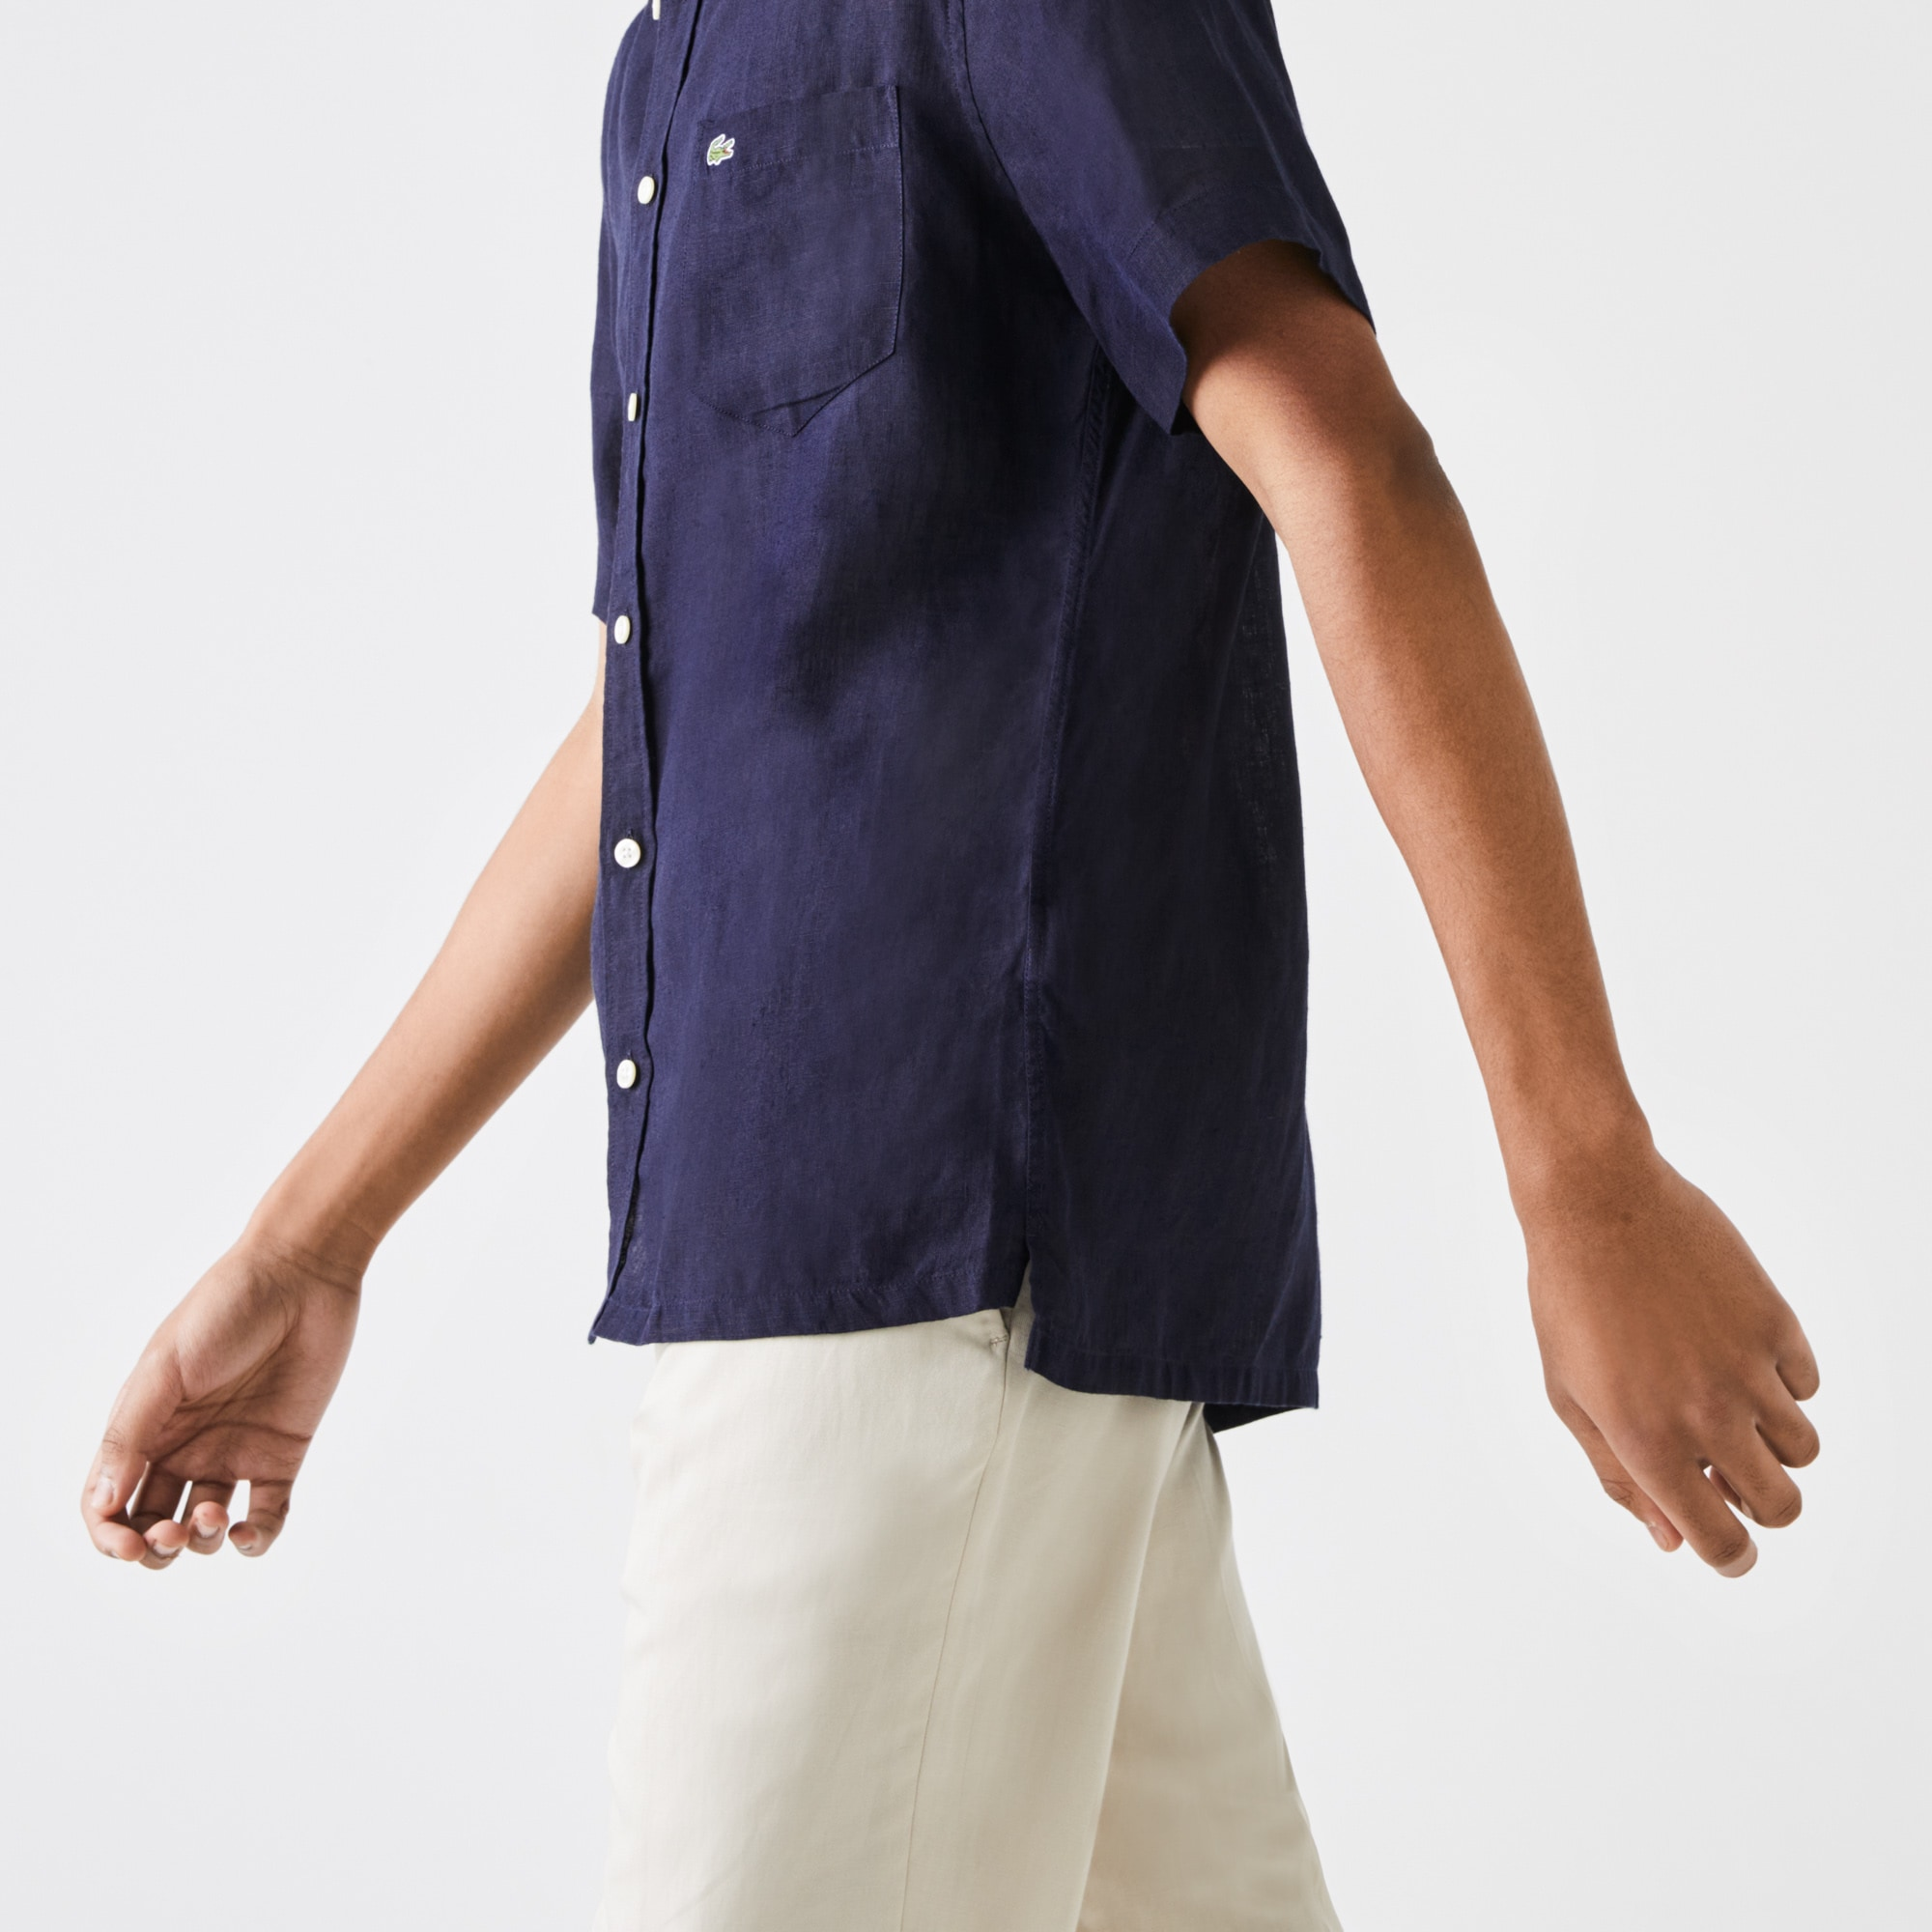 Lacoste - Camisa Lino - 5